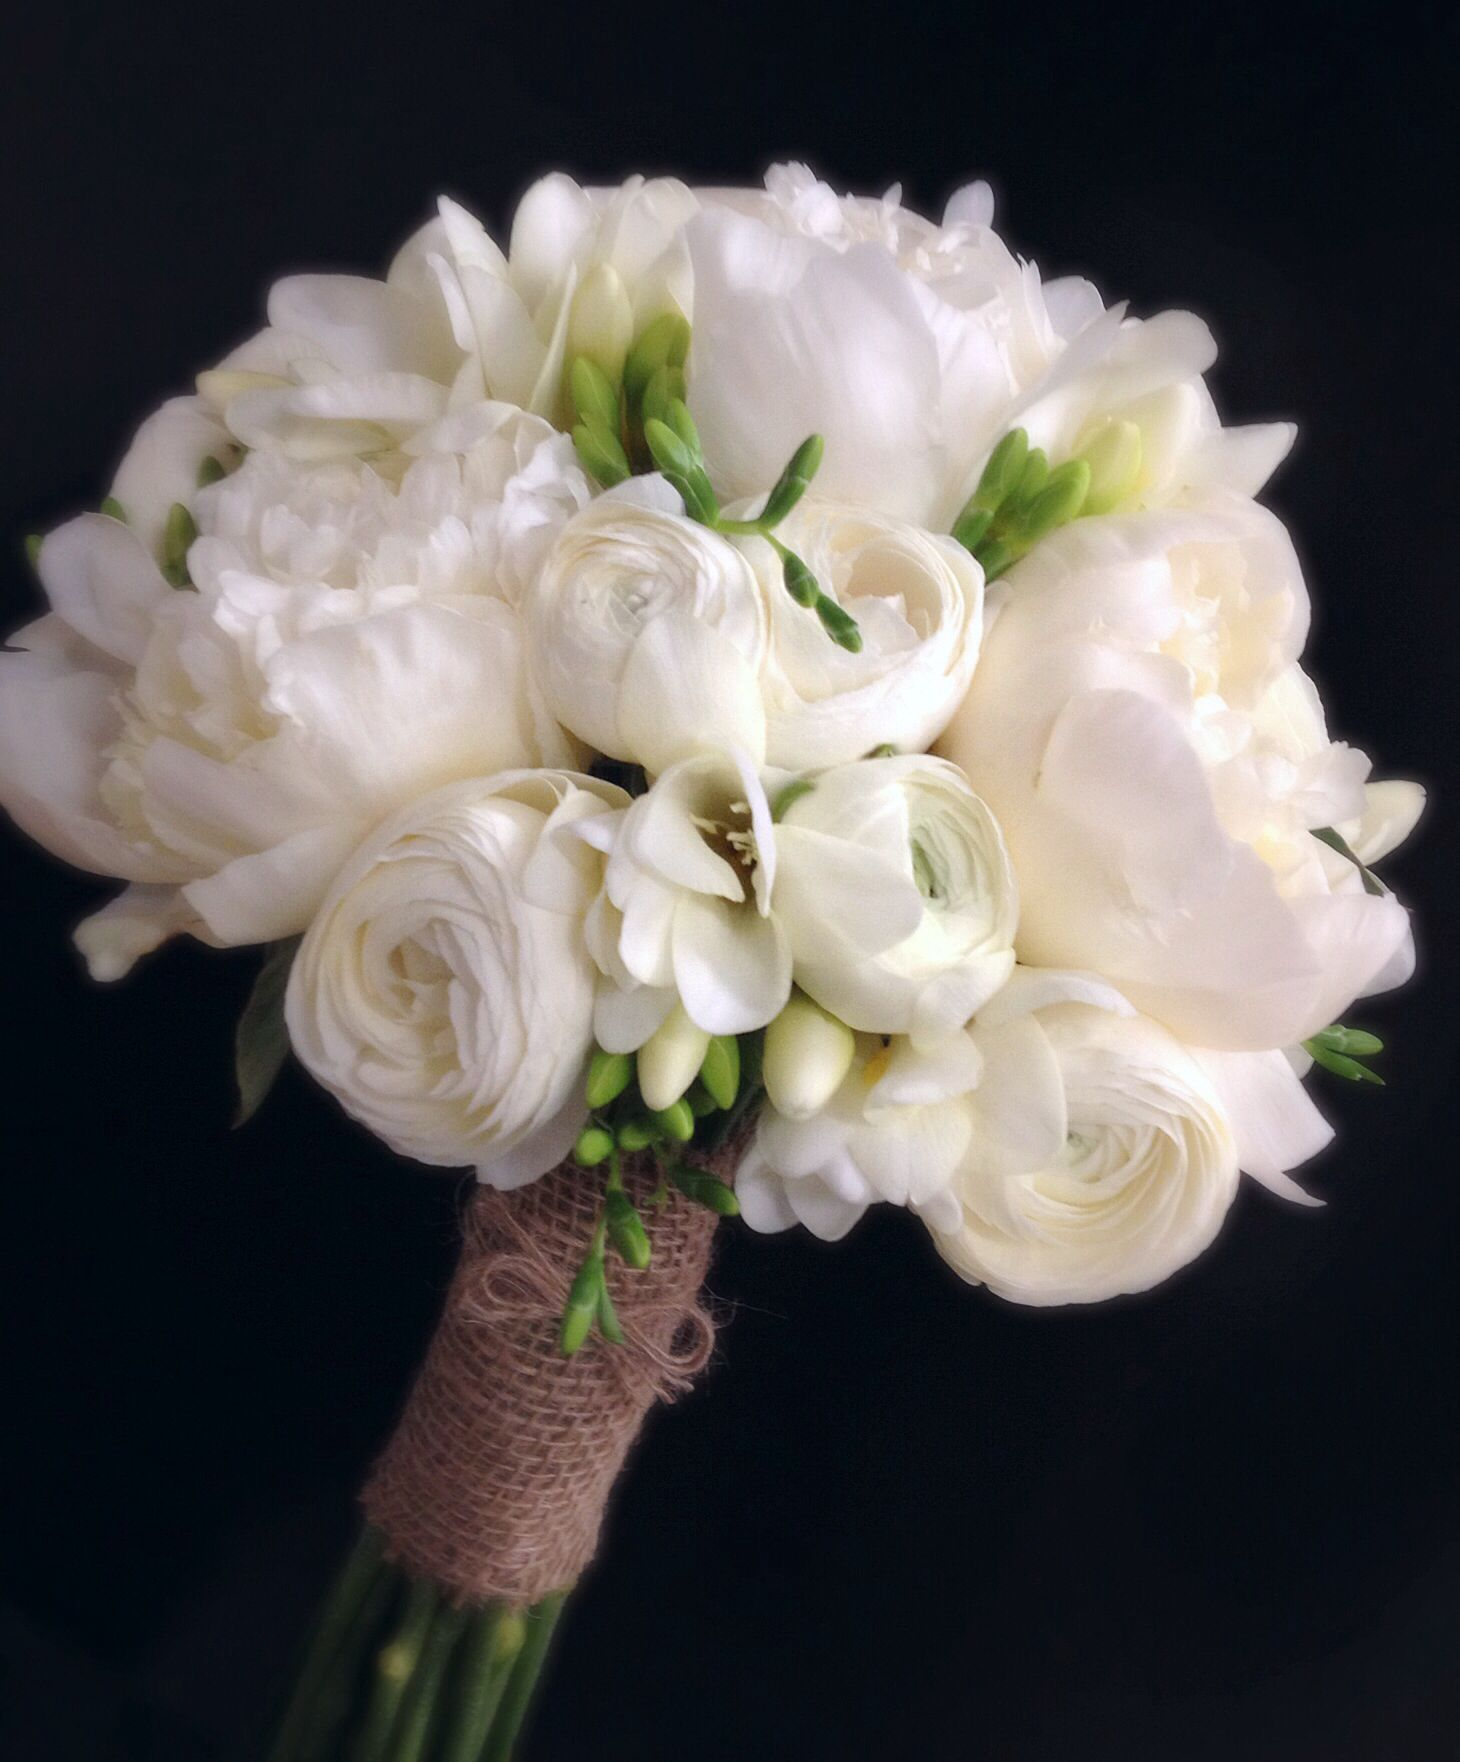 all a white peony ranucula and freesia bridal bouquet wrapped in burlap bouquets pinterest. Black Bedroom Furniture Sets. Home Design Ideas